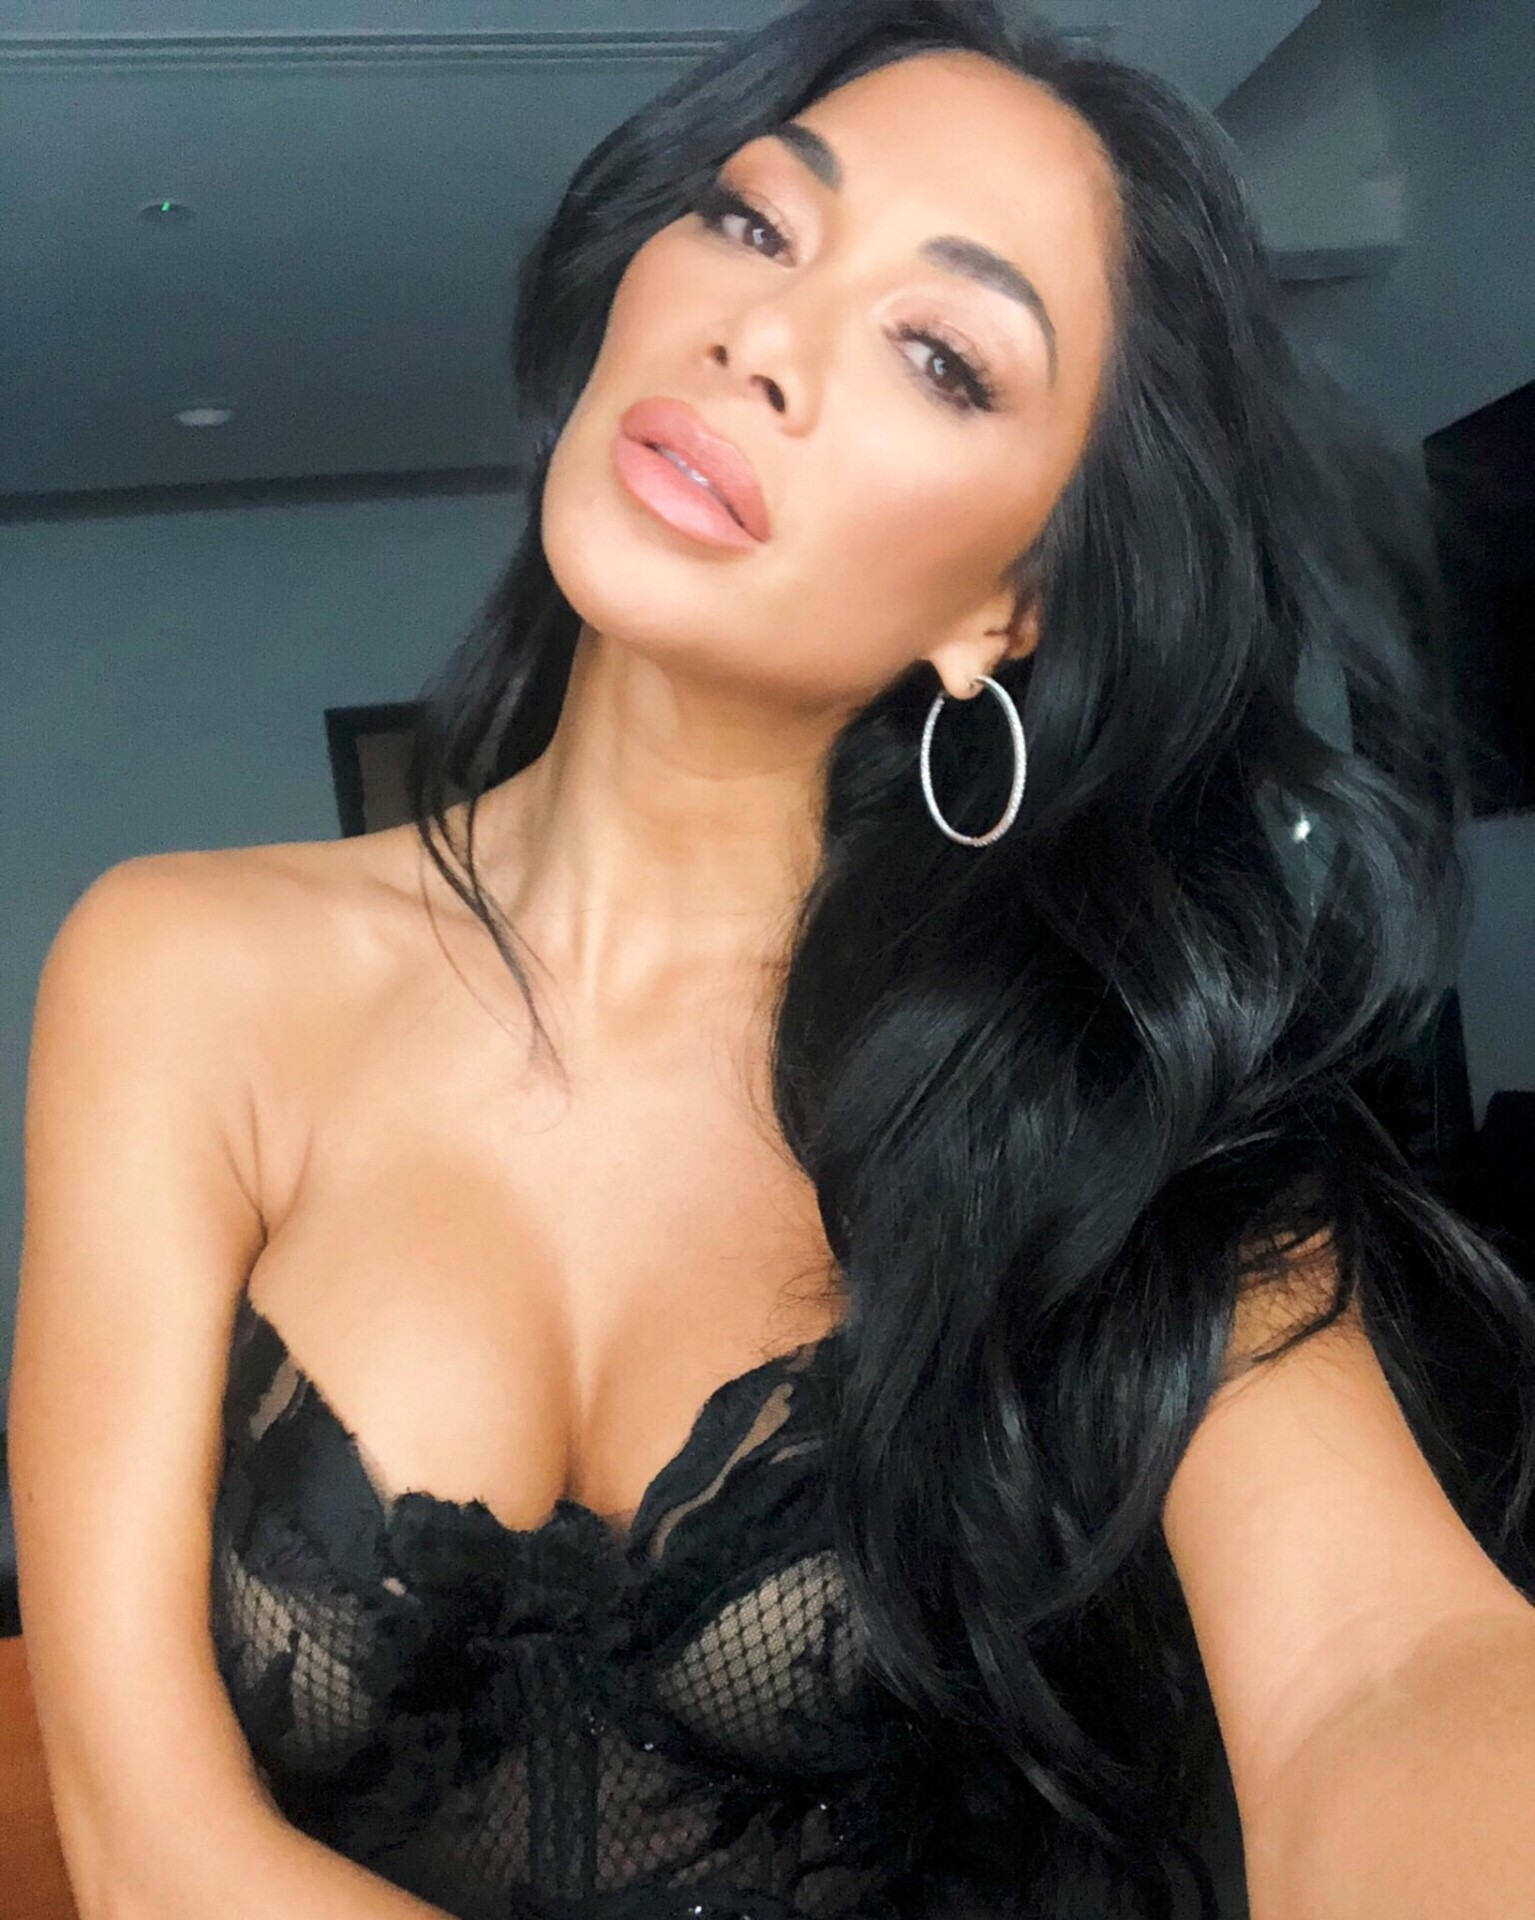 Nicole Scherzinger Big Cleavage